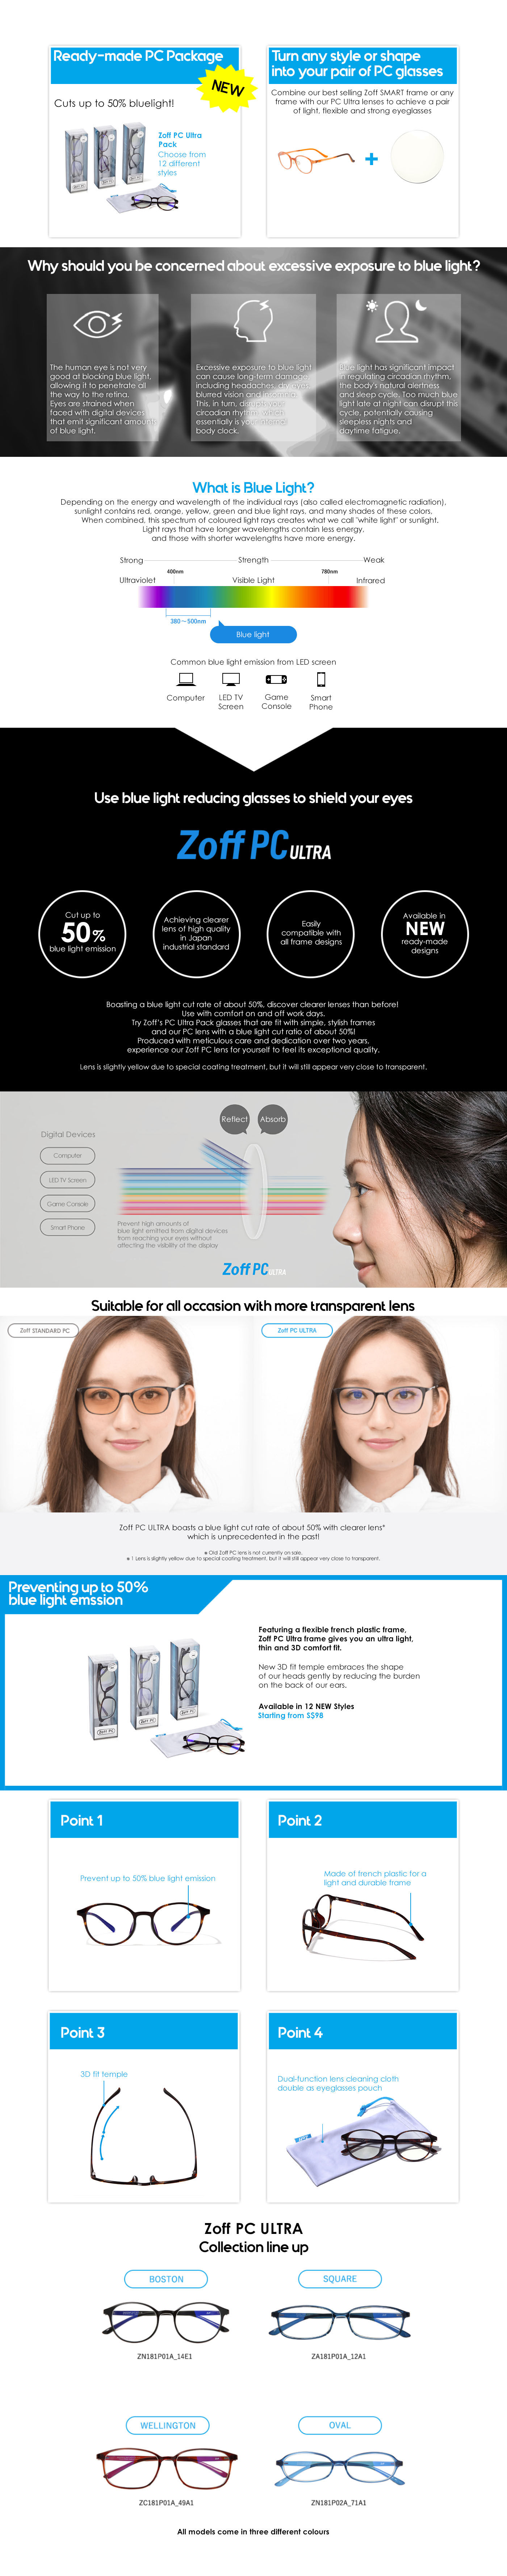 Zoff PC ULTRA, PC Lens cut blue light 50%